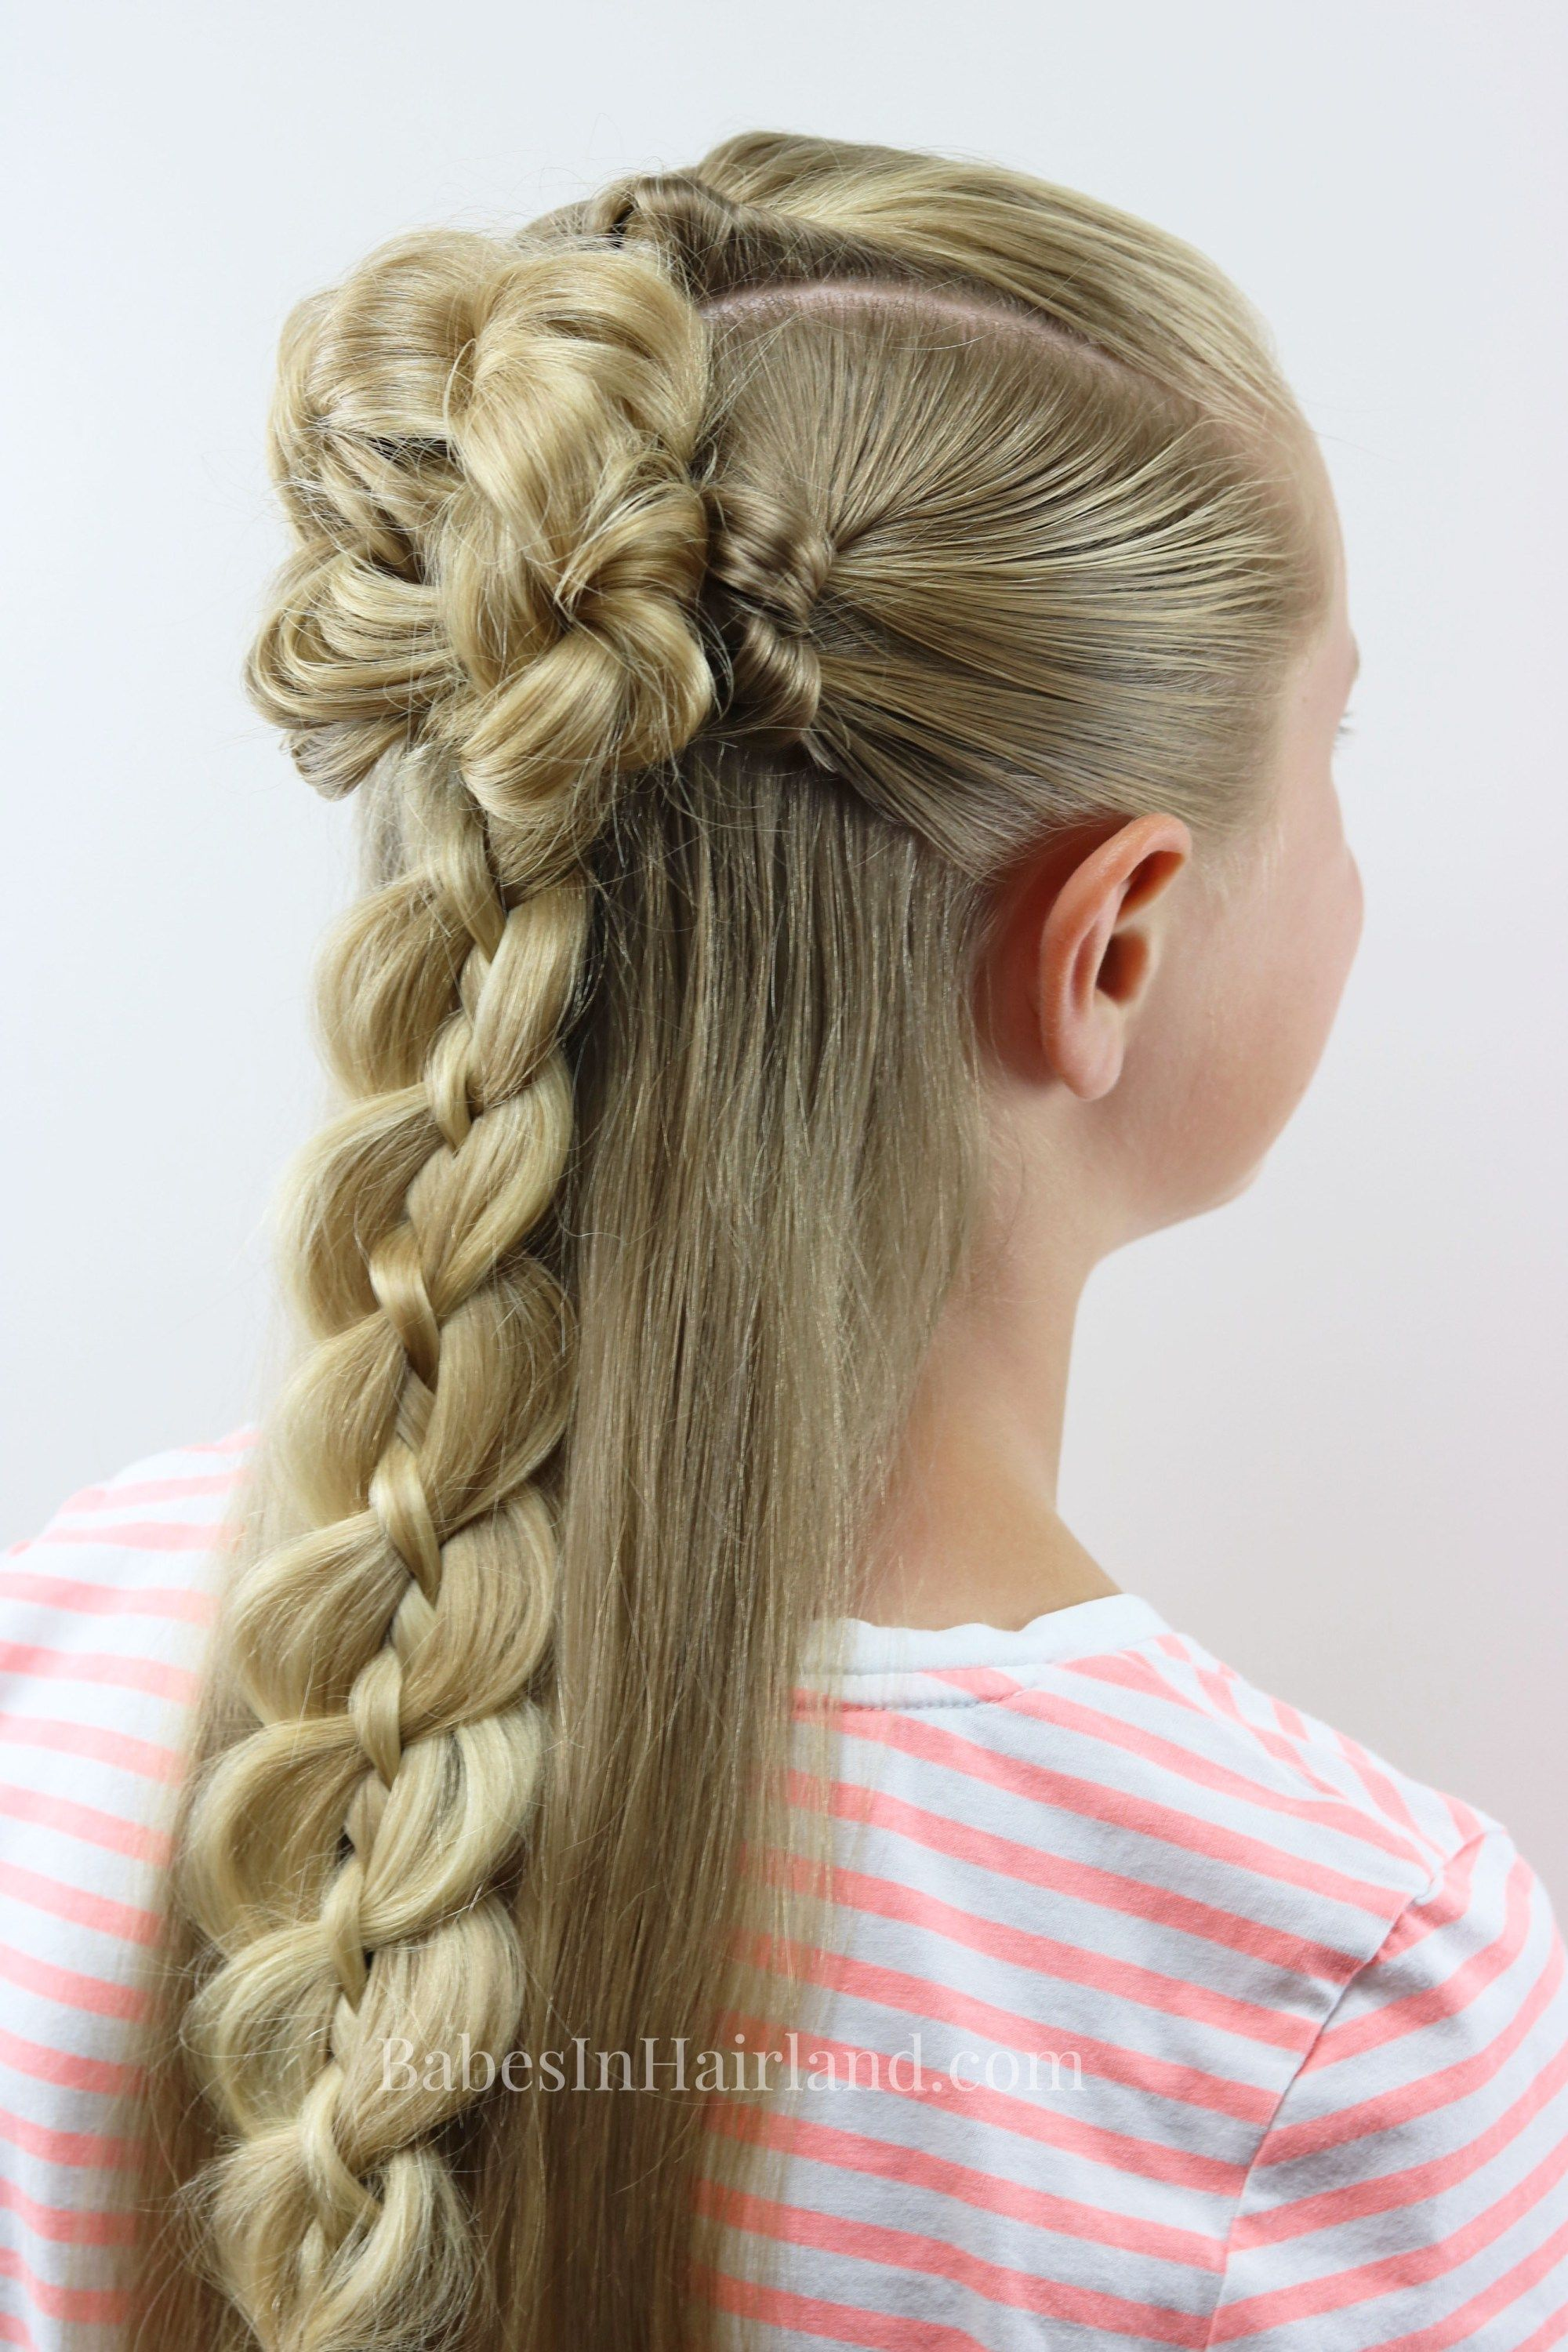 Online hairstyle changer for women braided hairstyle pigtails